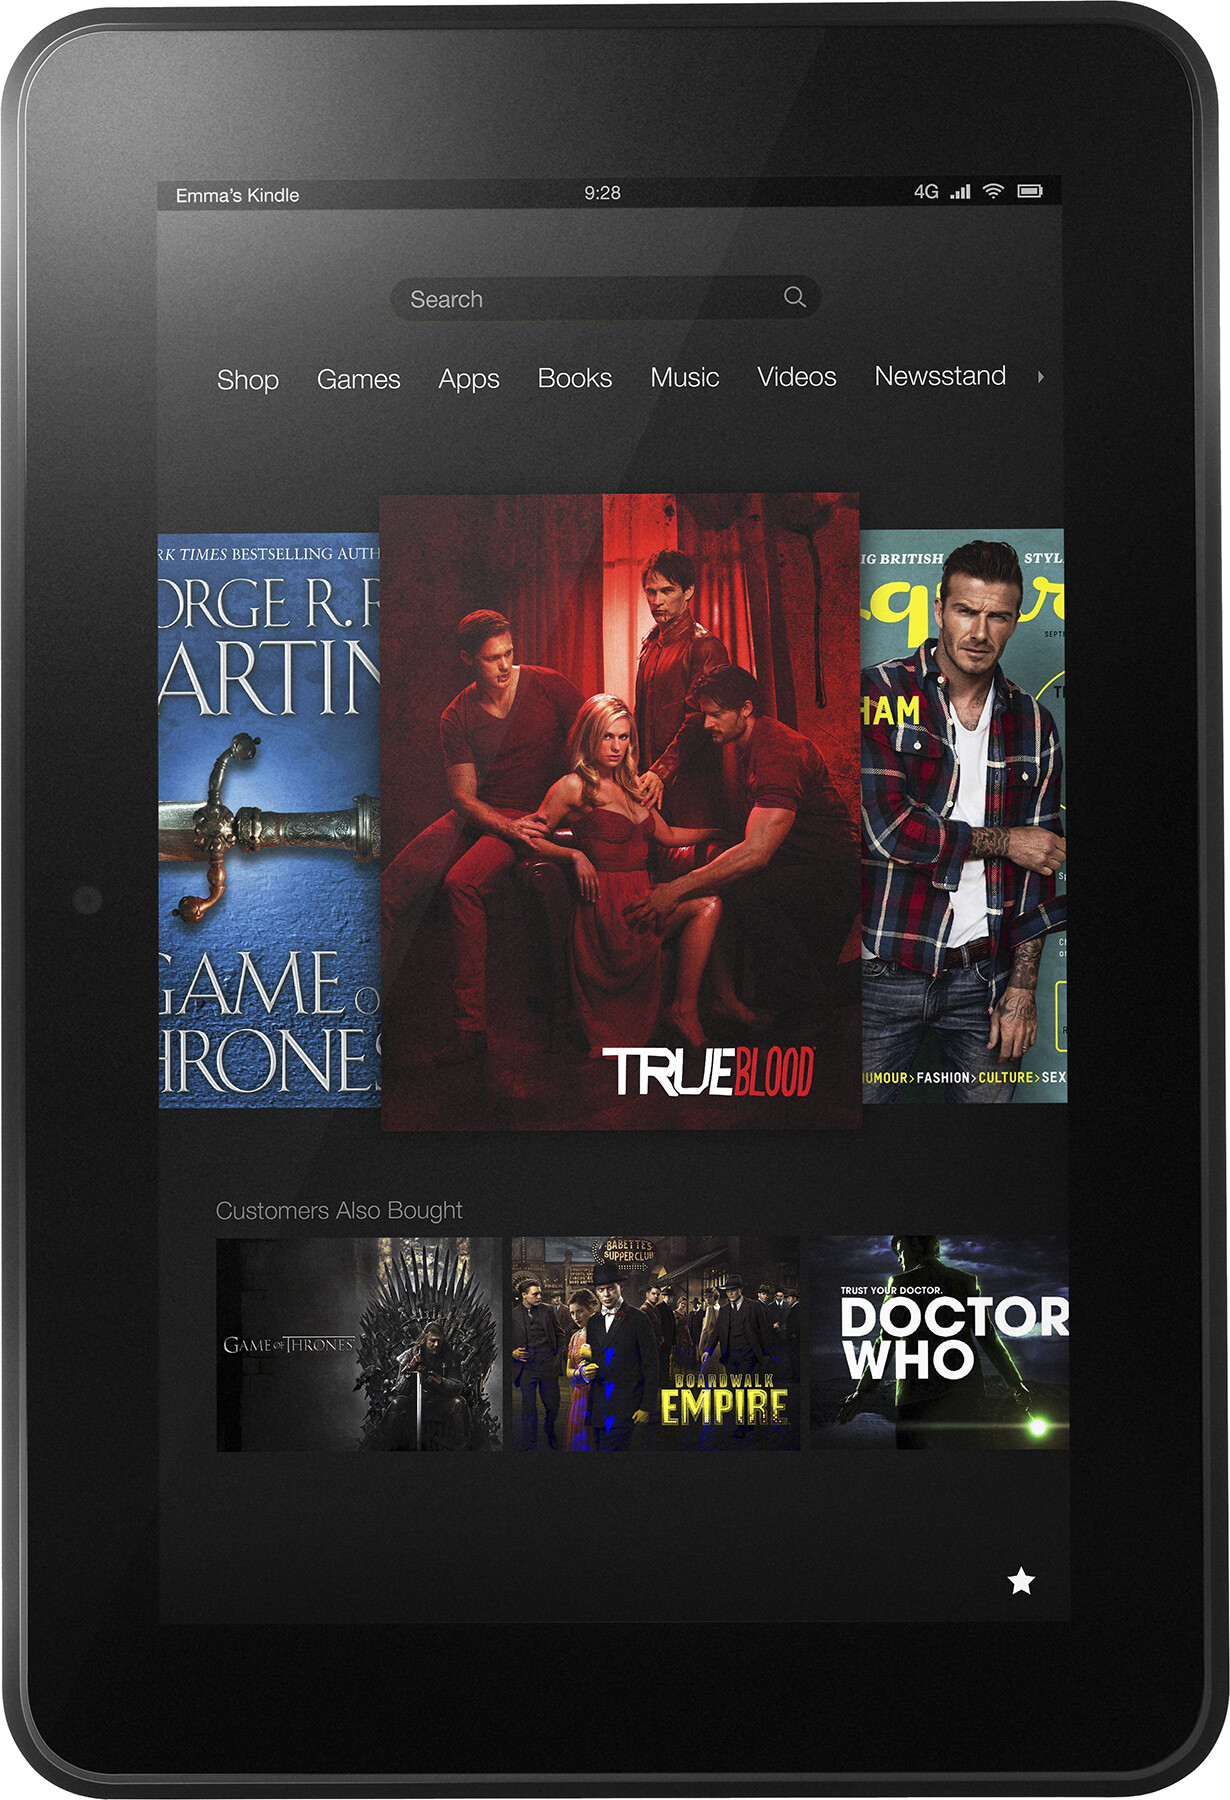 Amazon Kindle Fire HD 8 9 Size - Real life visualization and